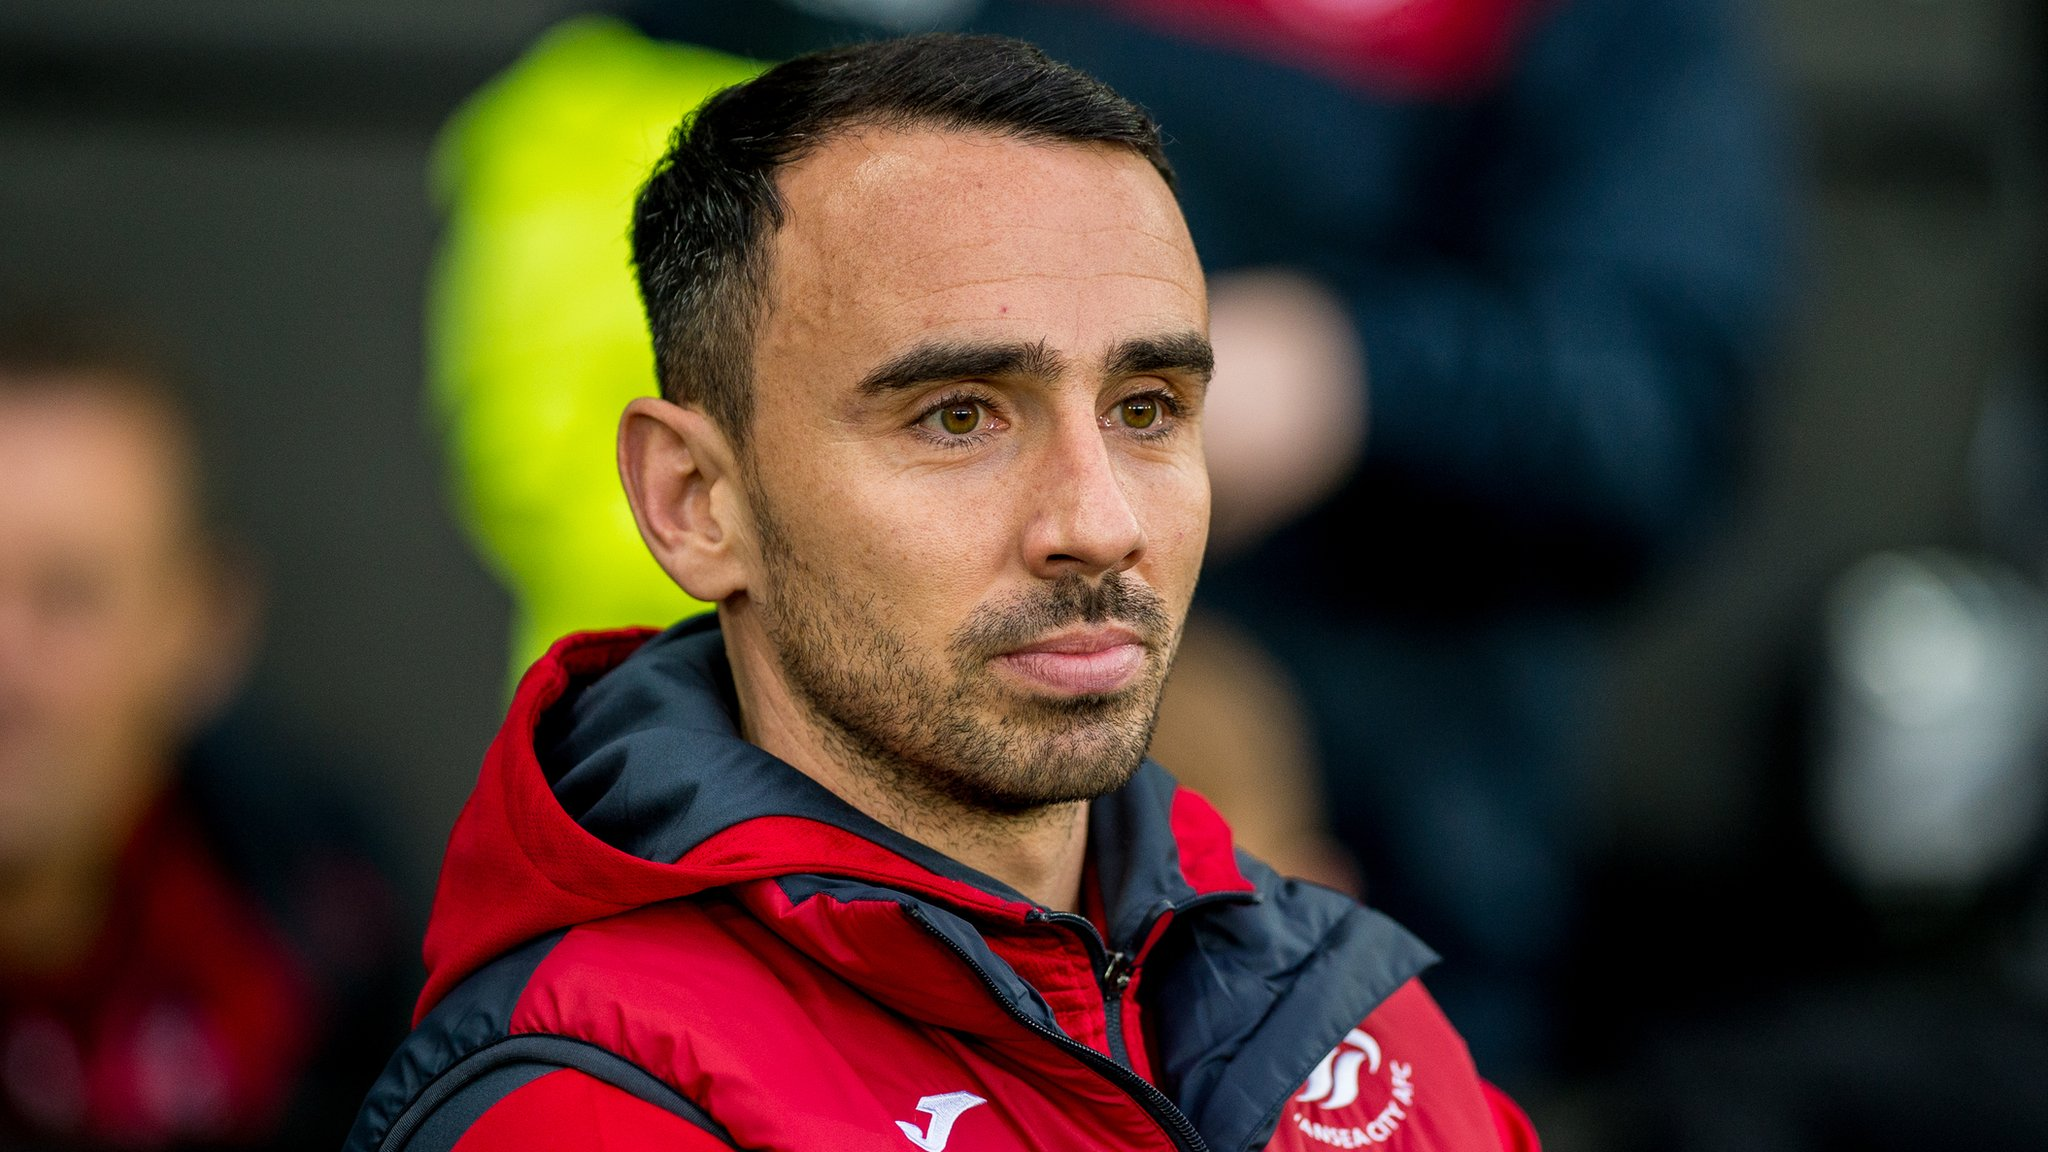 Leon Britton: Style is key for next Swansea City boss